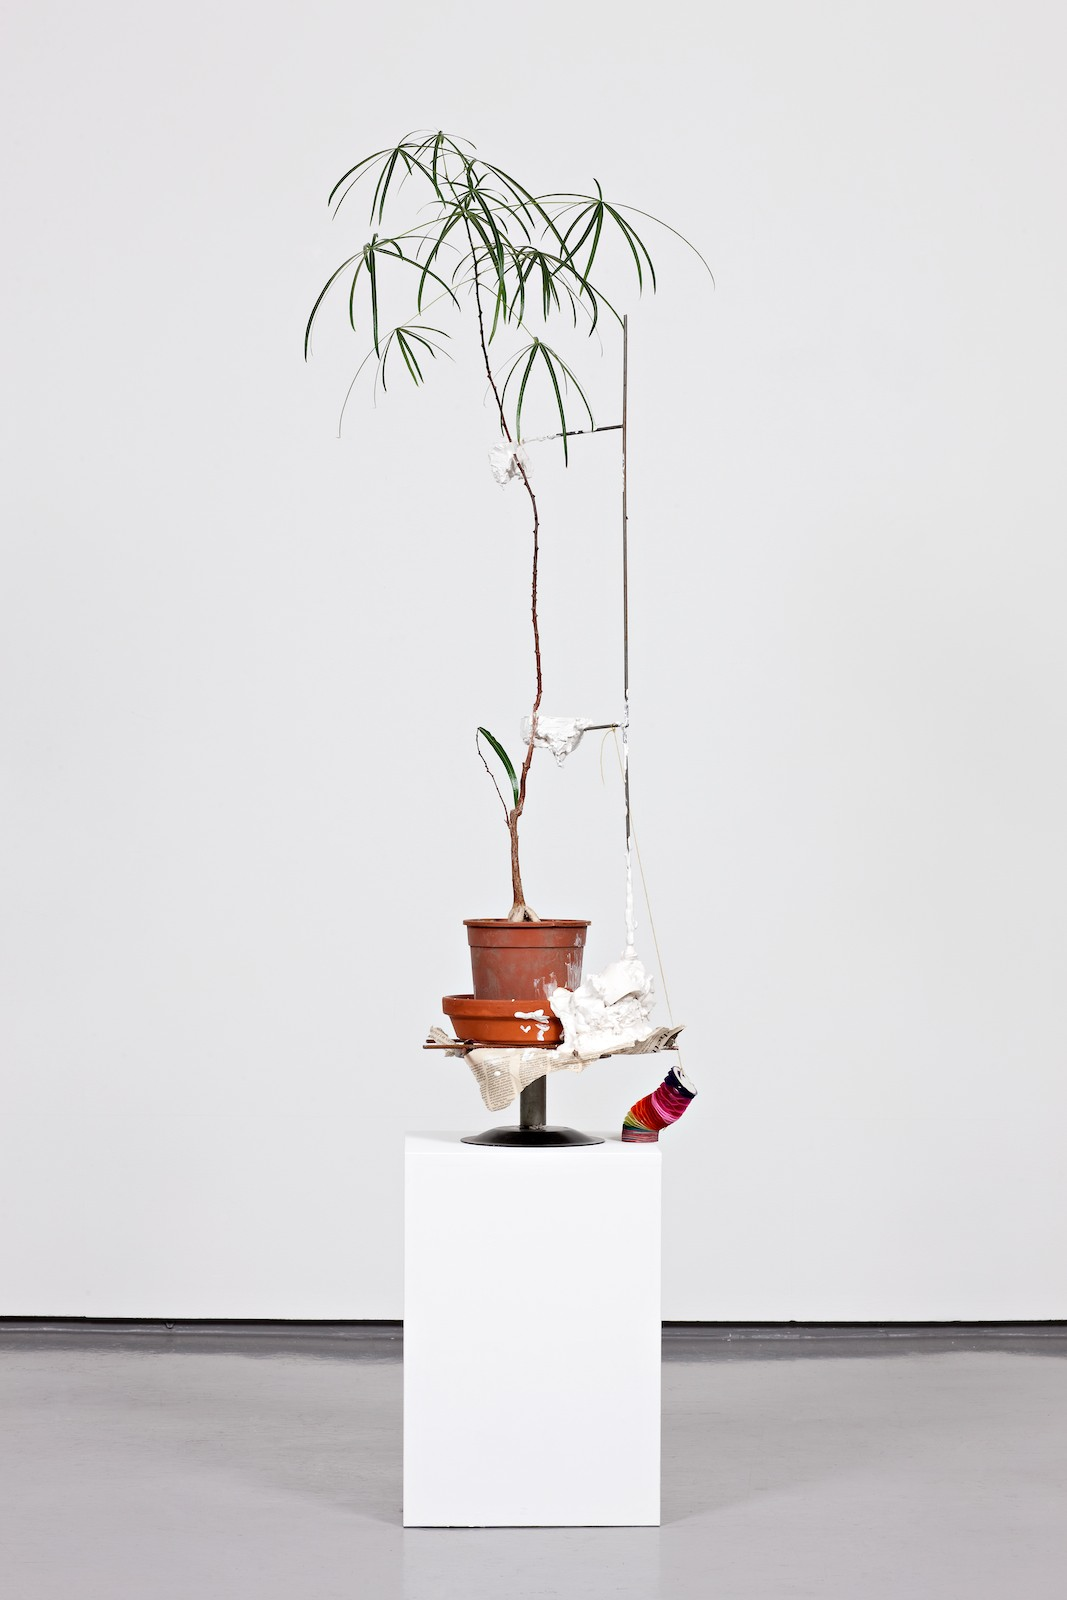 Sustainable (as time grows you will have to pay attention to both plaster and plant. please respect them equally), 2009, bottleneck tree, plaster, iron, paper, ceramic, cavalet, cotillion, ca 110 x 40 x 40 cm